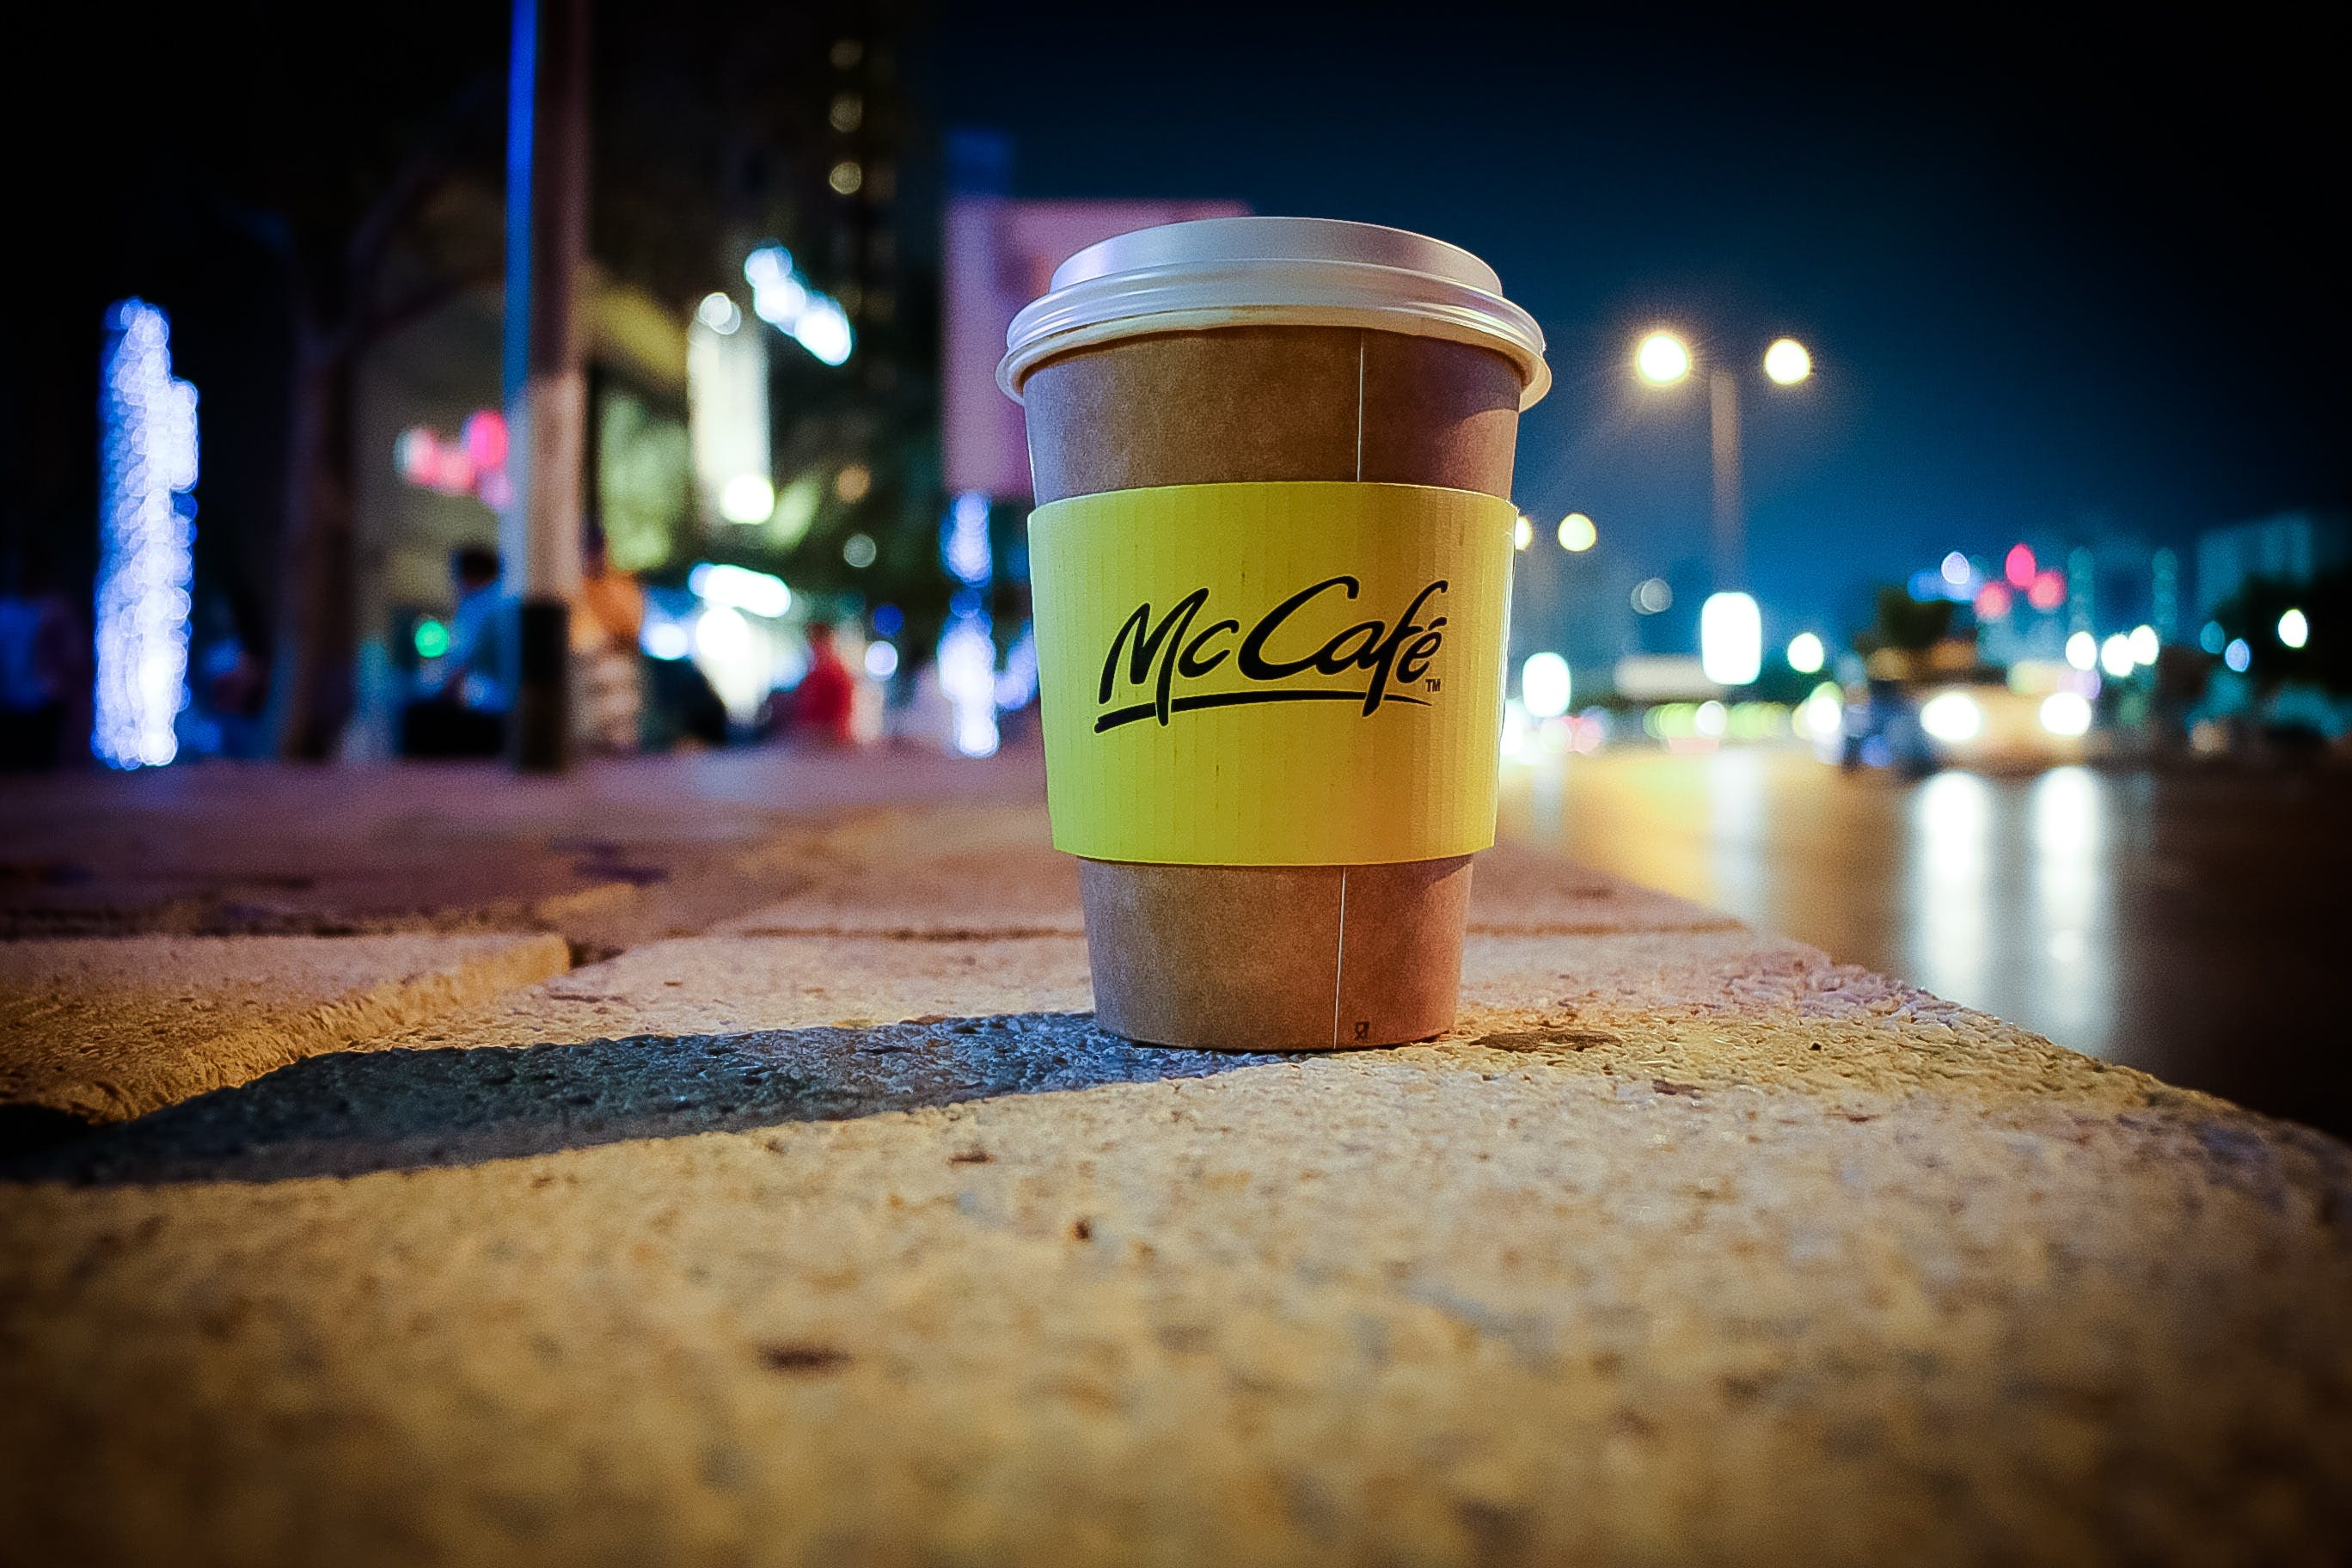 Mccafe Disposable Coffee Cup on Road